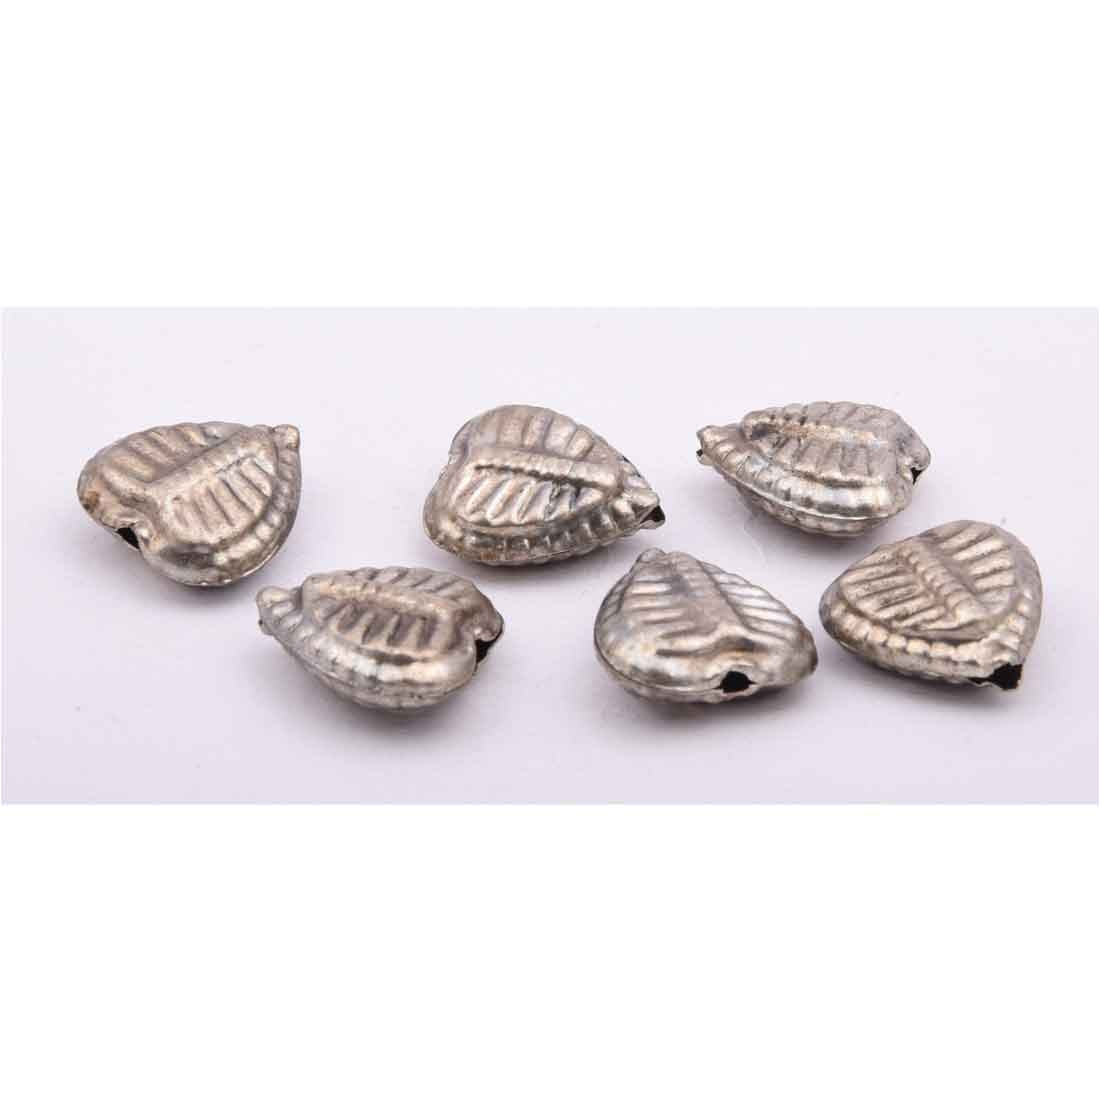 Beads India 1700050  Handcrafted Metal Beads/Discounts Above 500 pcs